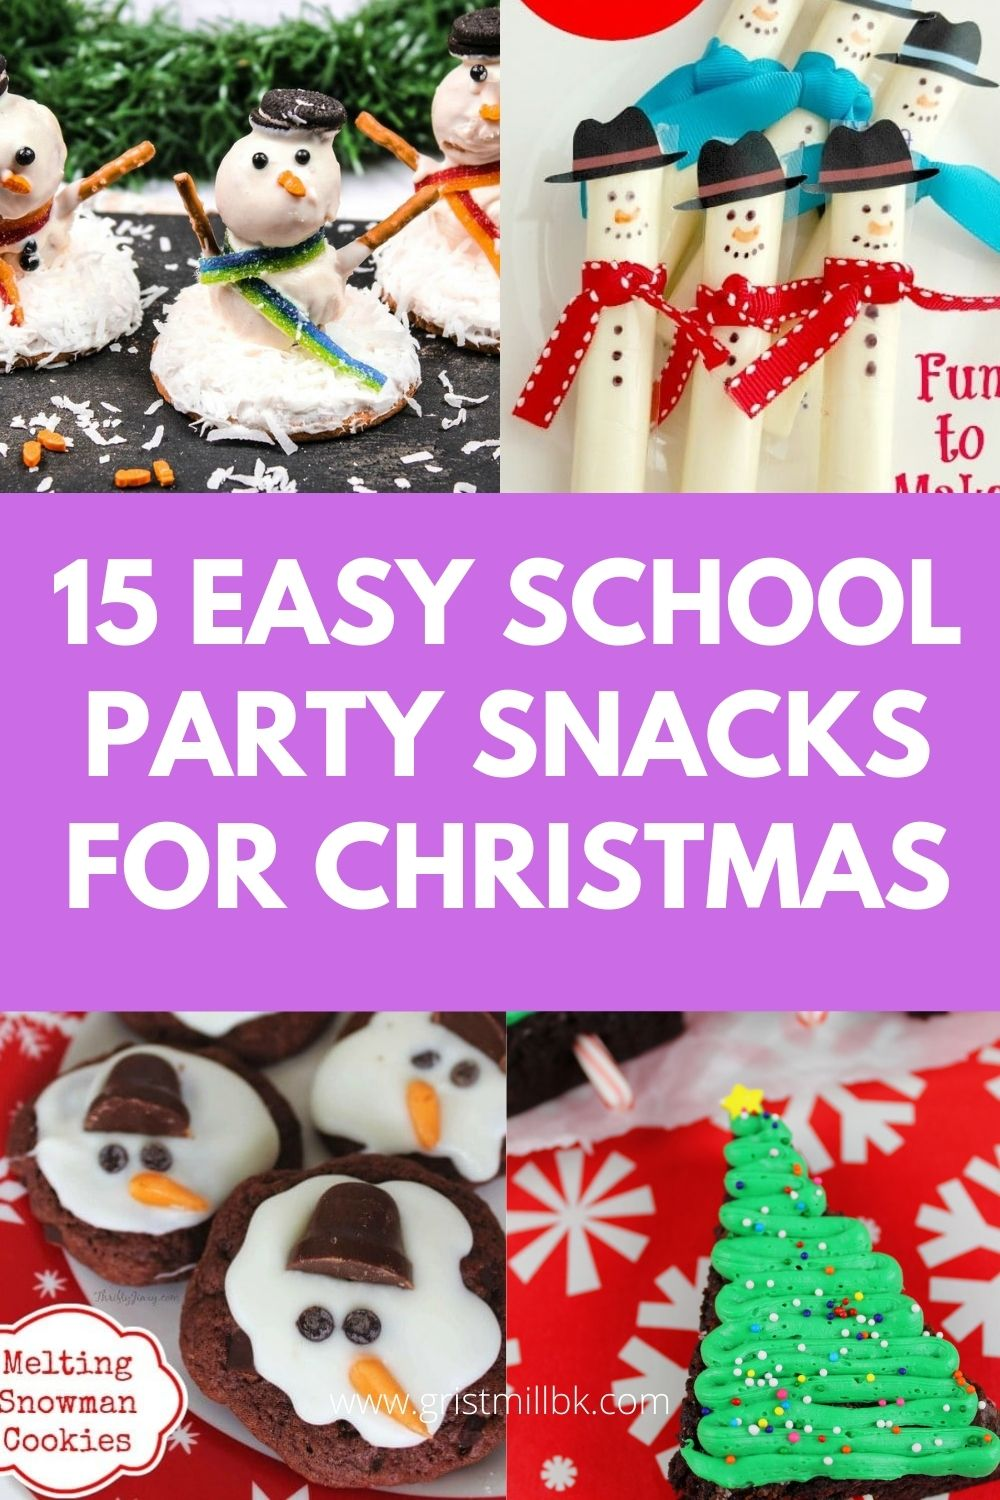 15 easy school party snacks for christmas